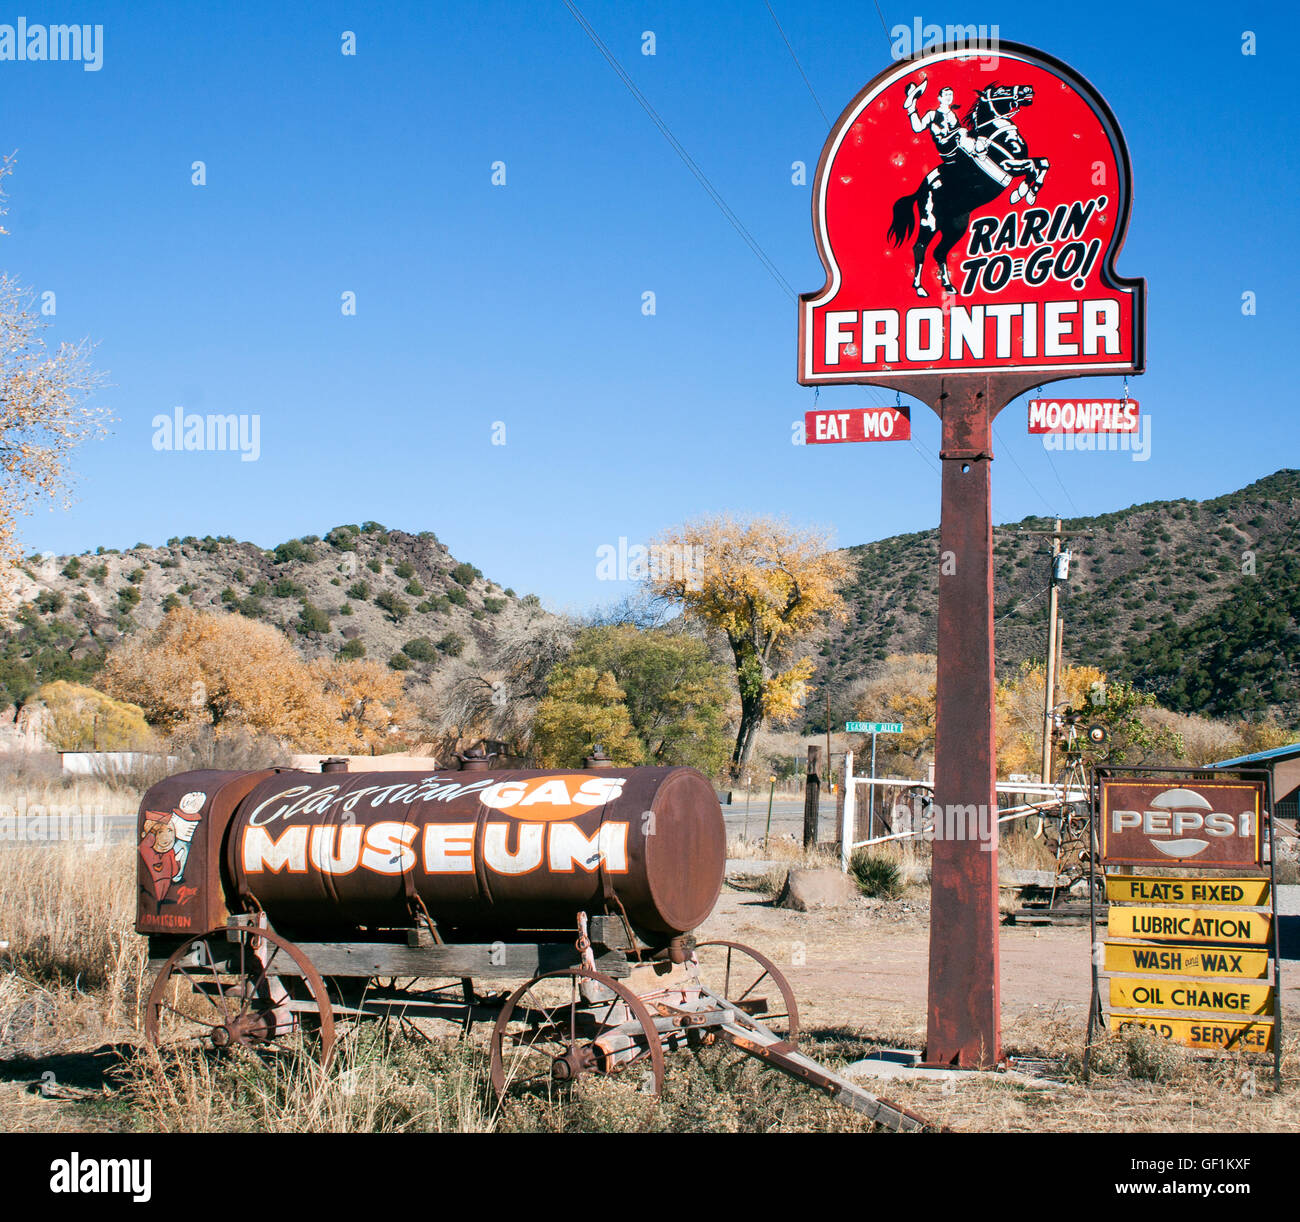 Classical Gas Museum in Embudo New Mexico - Stock Image